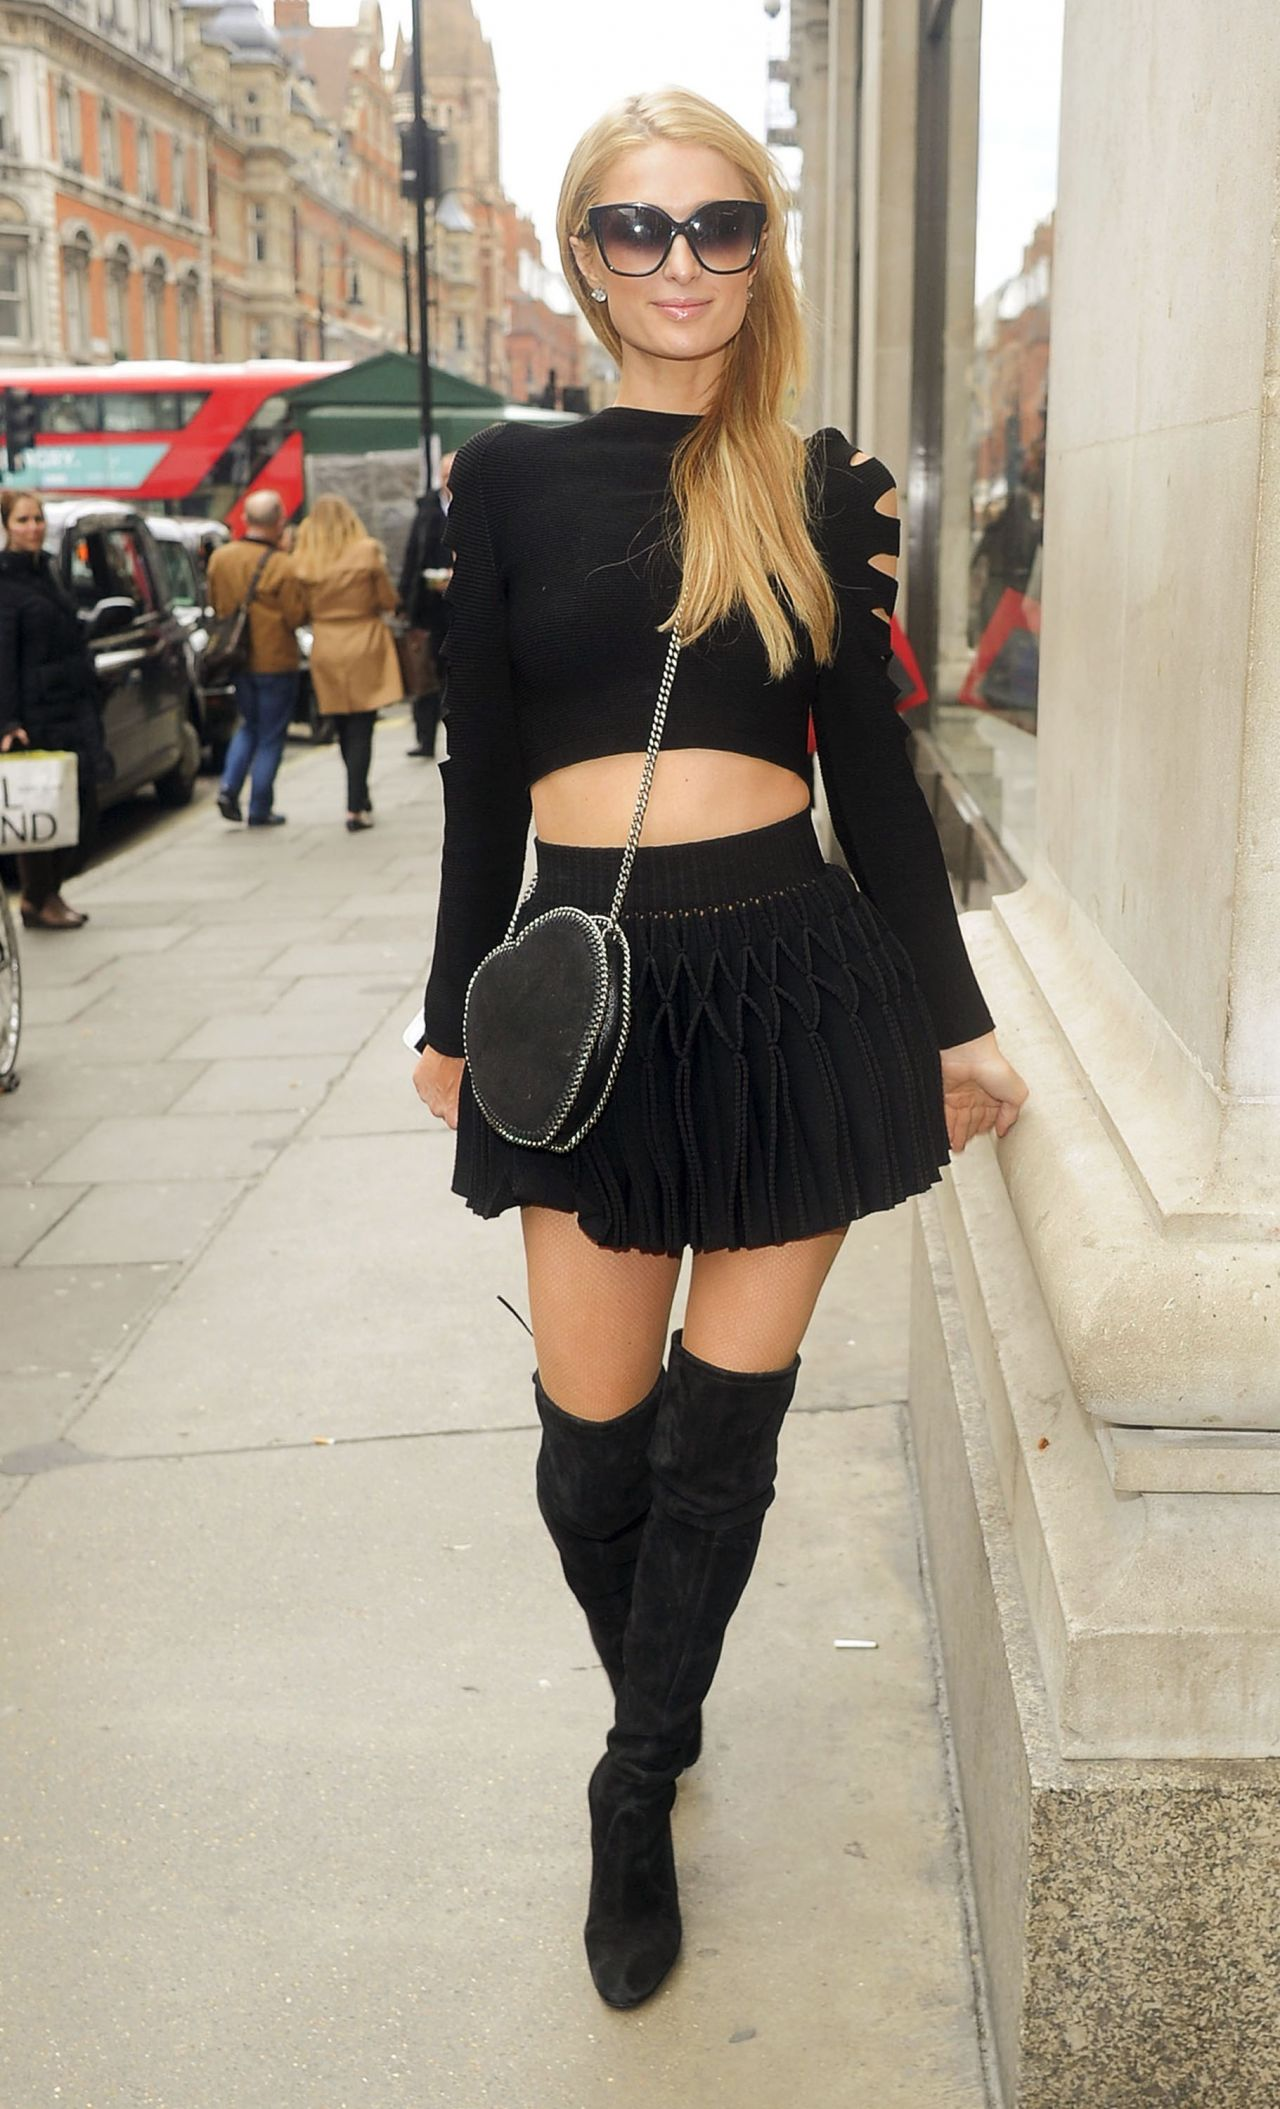 Paris Hilton Casual Chic Outfit Leaving Her Hotel On Her